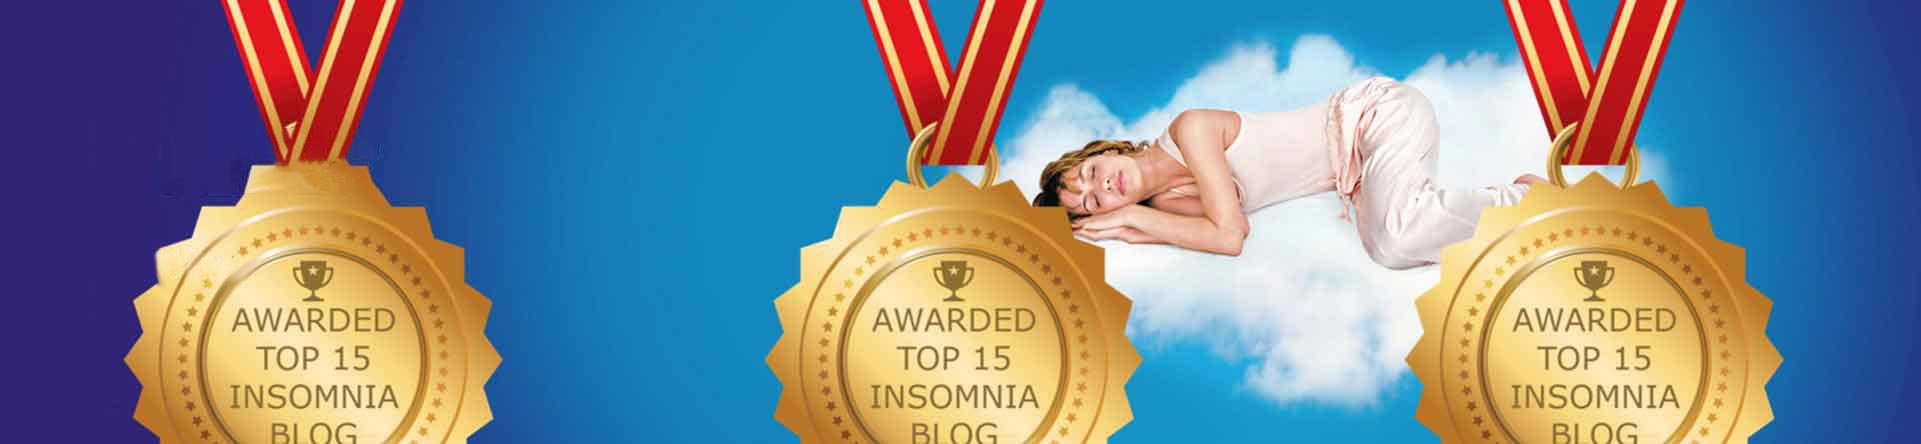 Award Winning Sleep Blog